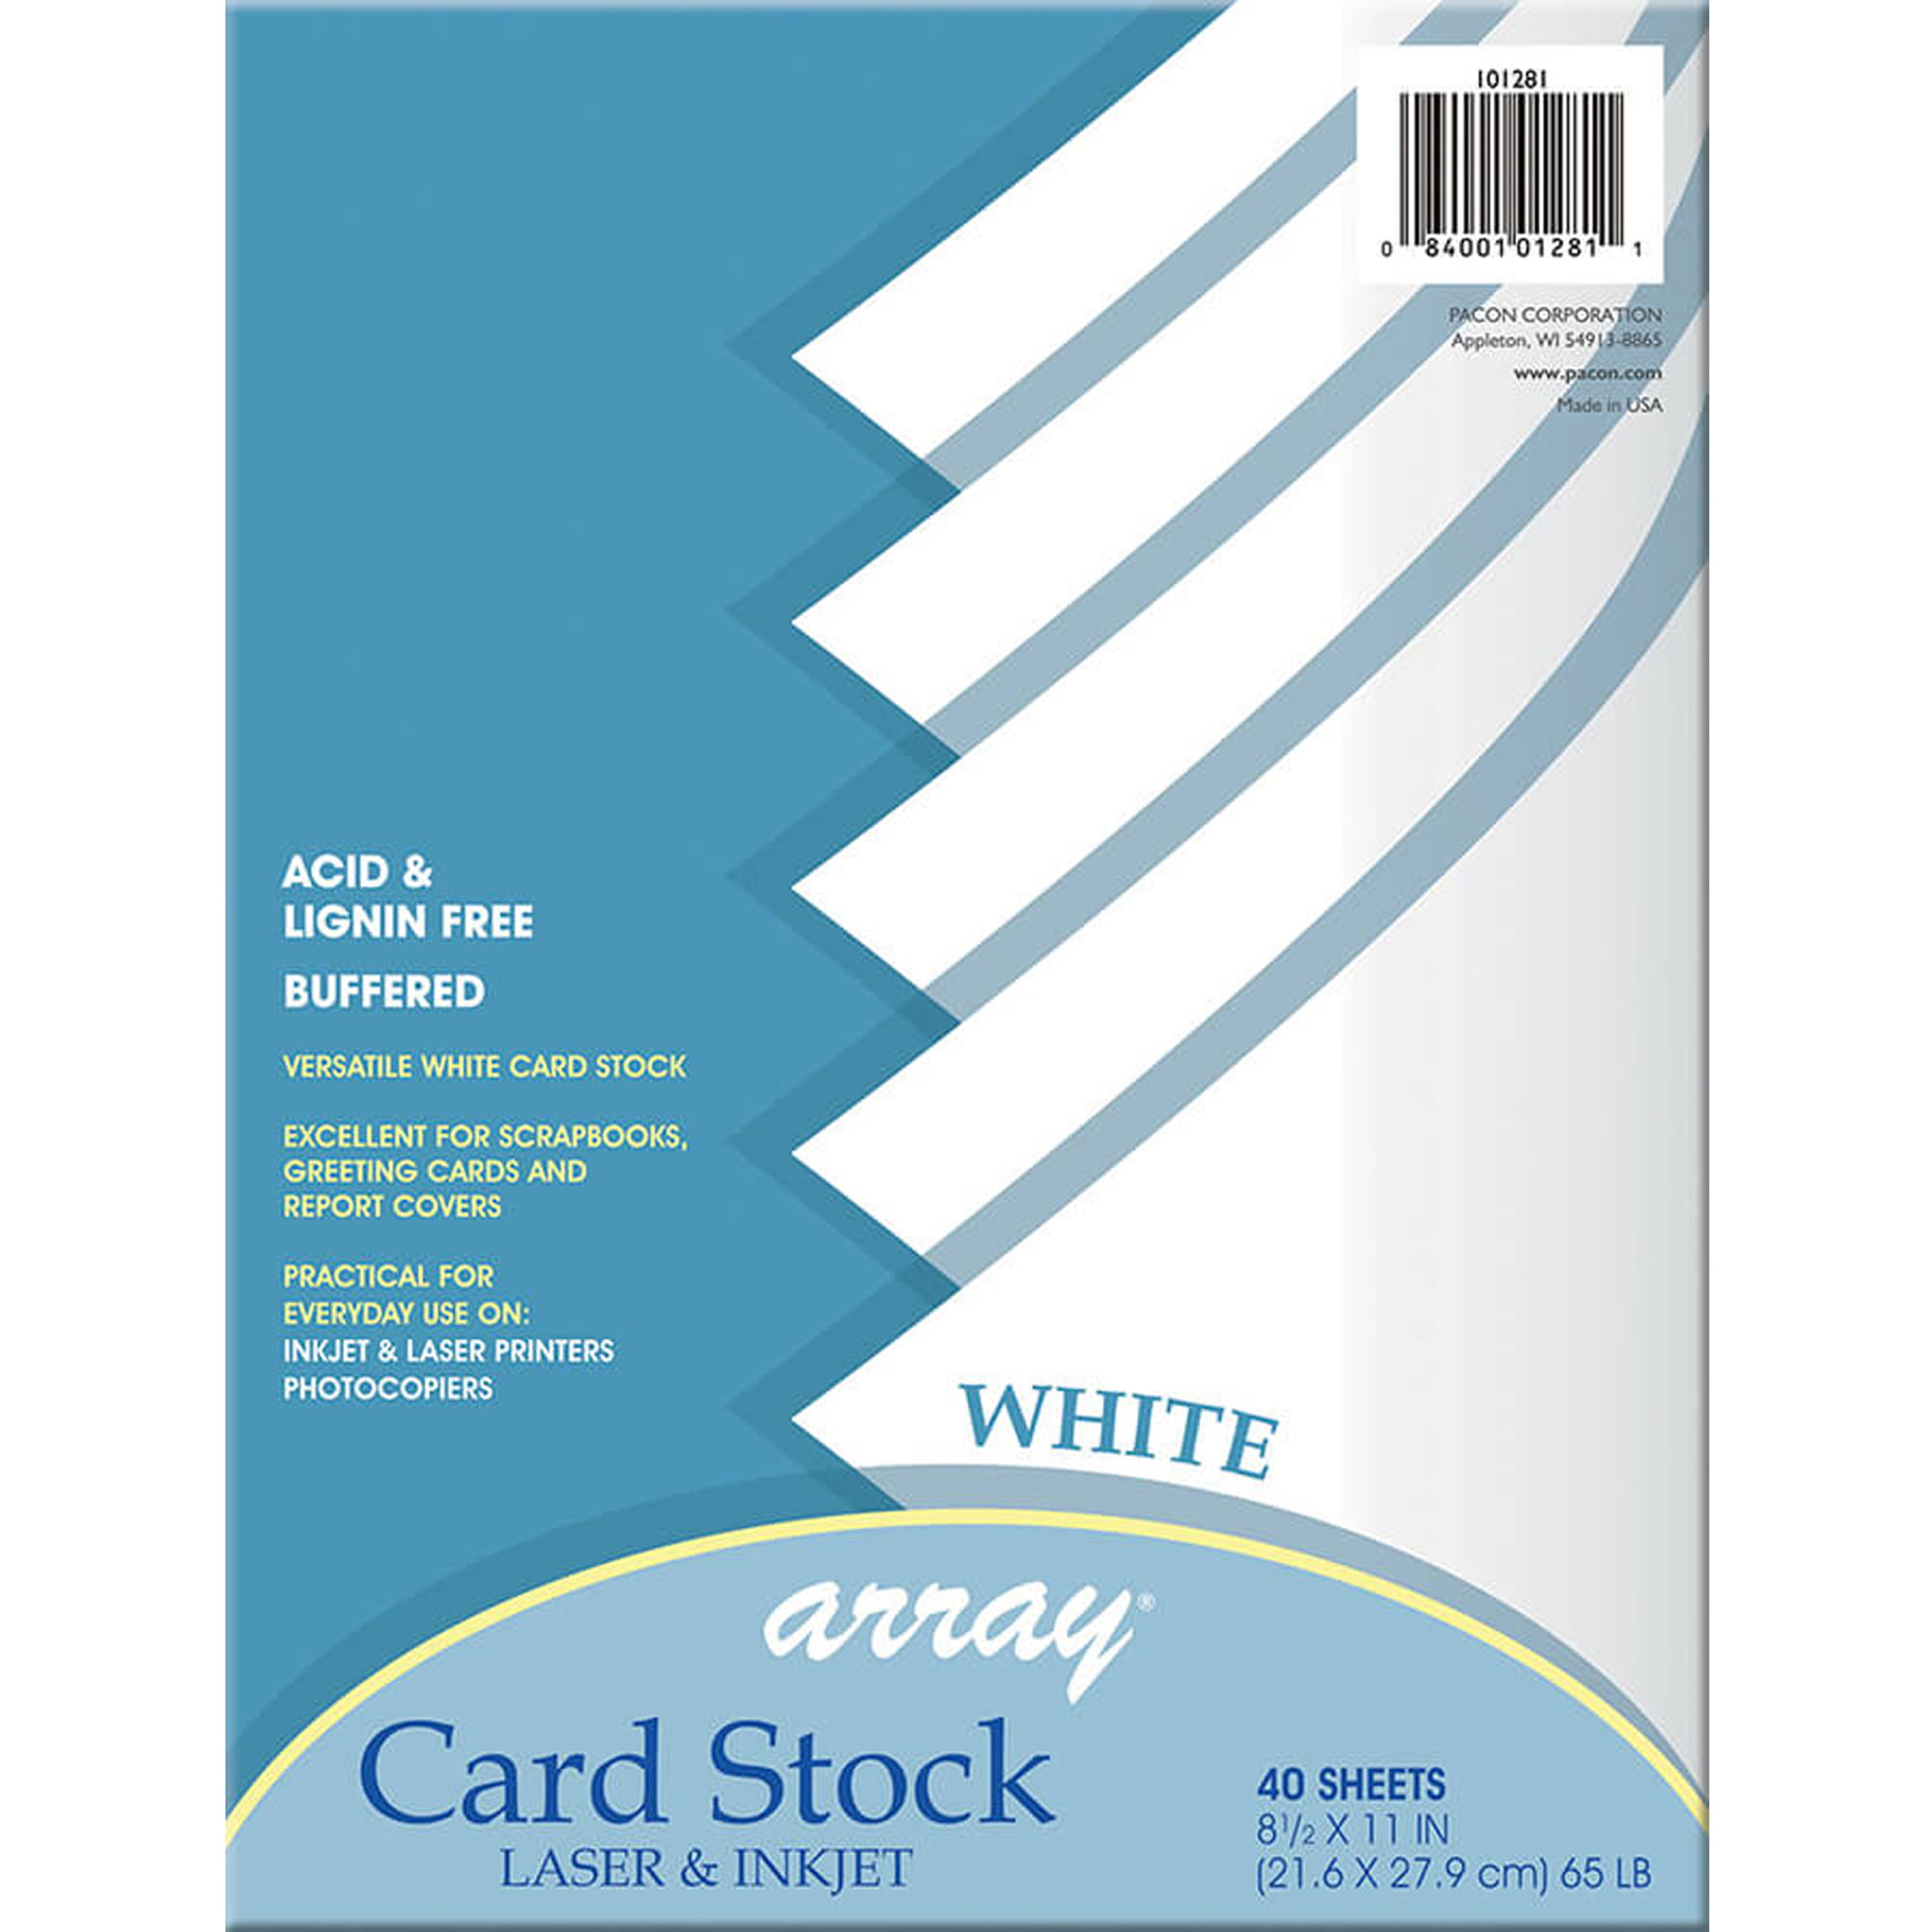 Array Card Stock, 65 lb., White , 40 SHeets Per Pack, 6 Packs by PACON CORPORATION